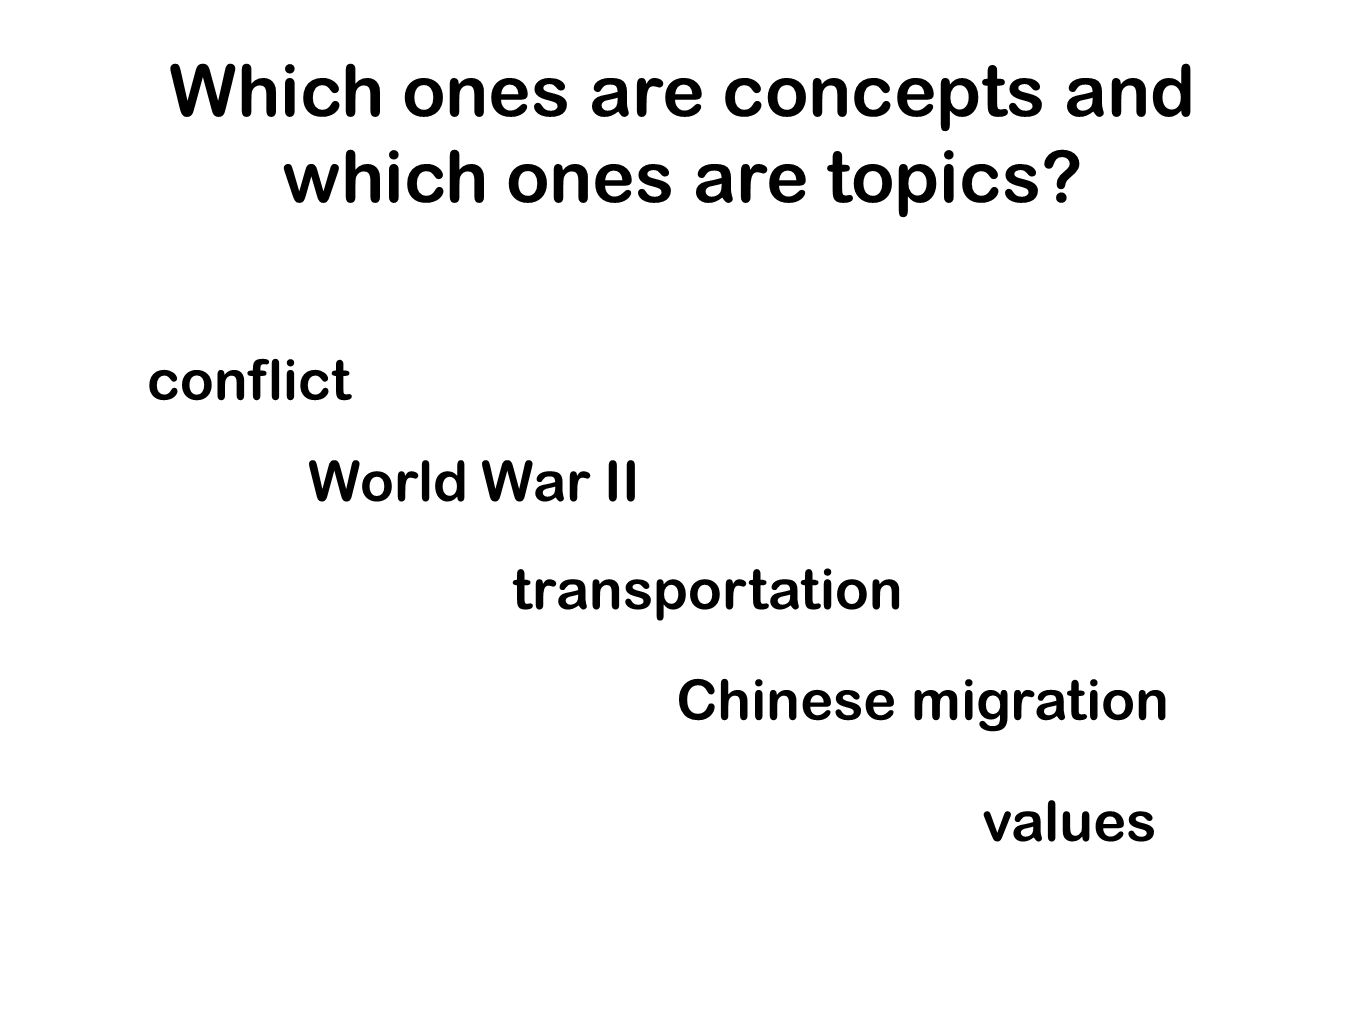 Which ones are concepts and which ones are topics